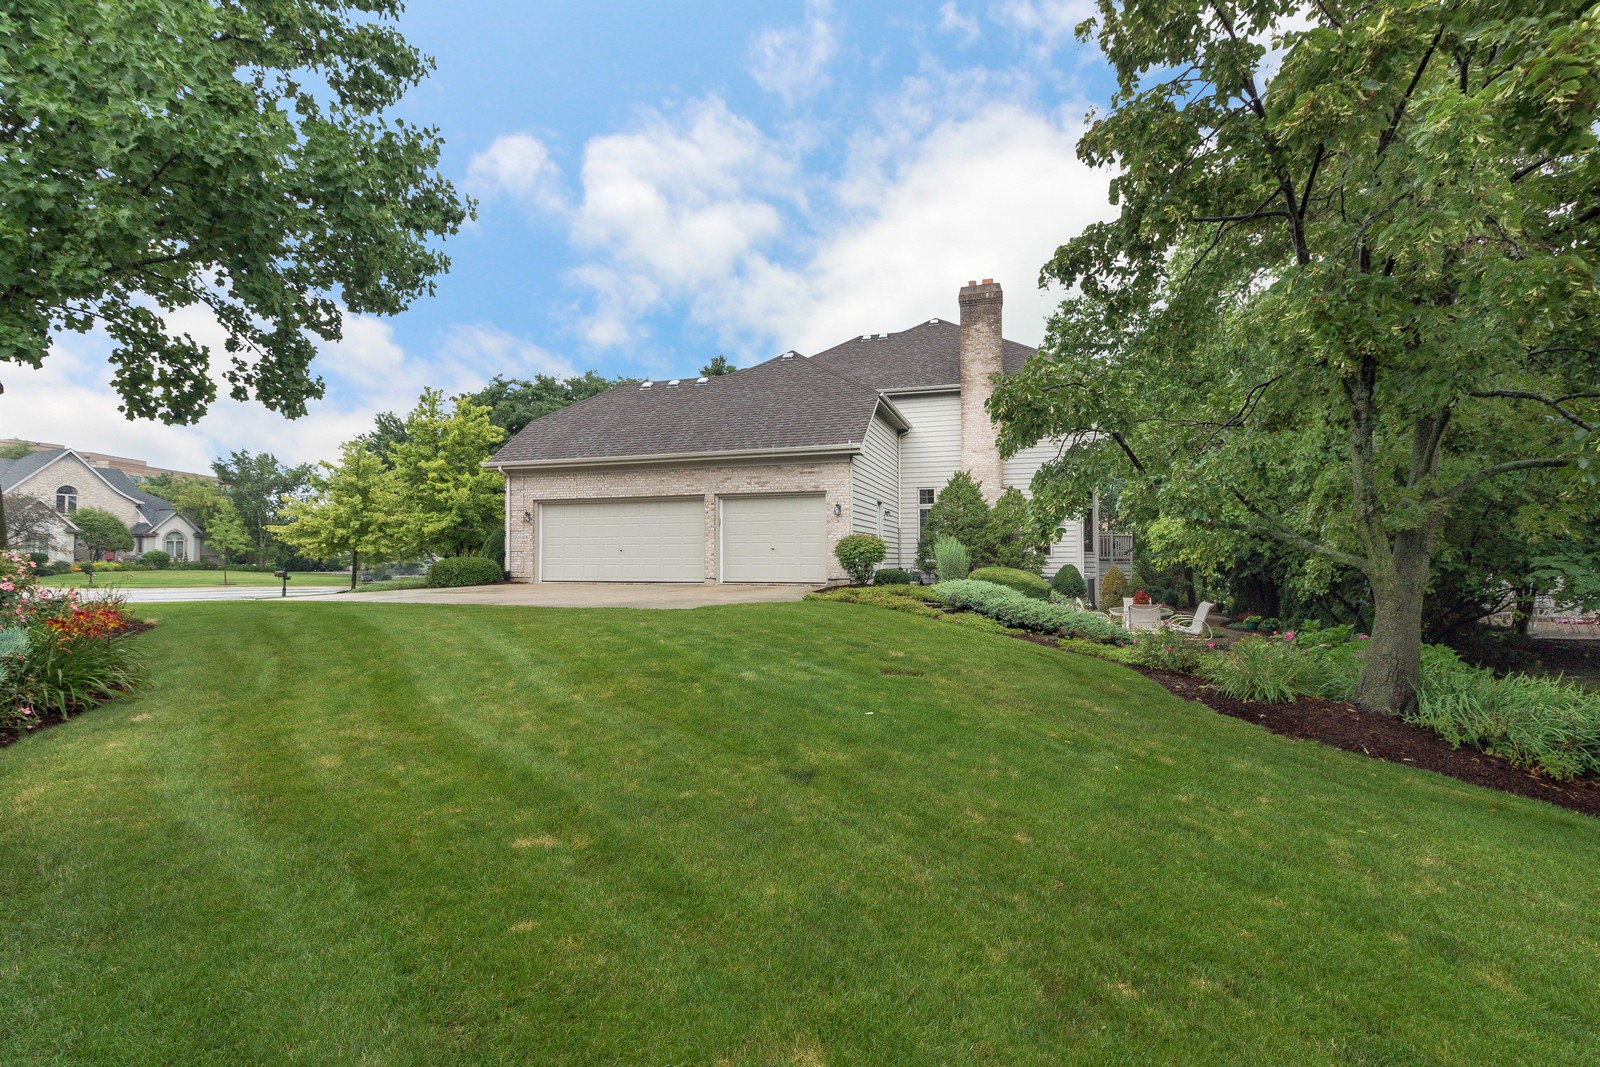 Additional photo for property listing at 2163 Canterbury 2163 Canterbury Lane Lisle, Illinois 60532 United States